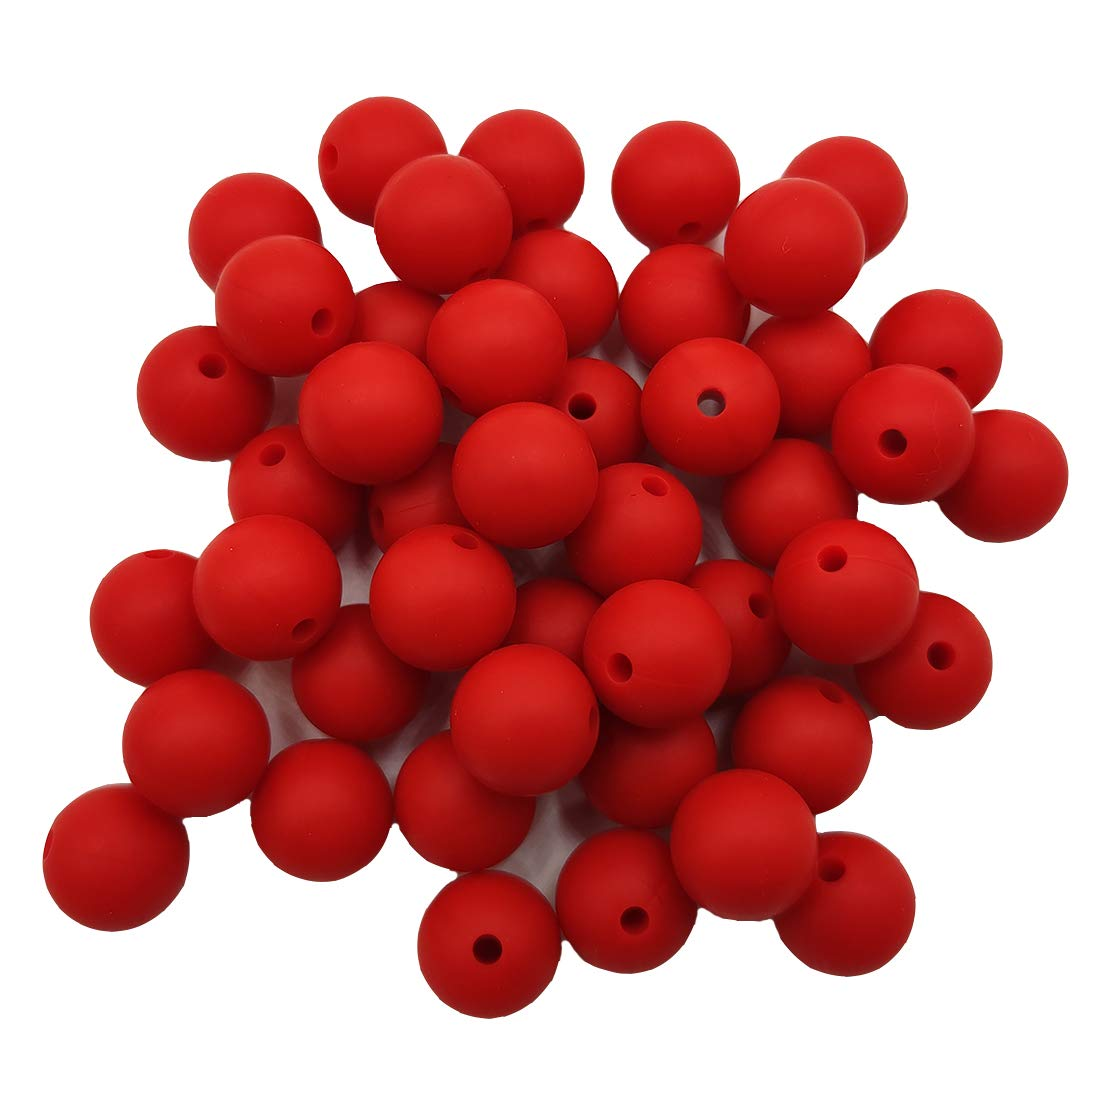 100pcs Scarlet Red Color Silicone Round Beads Sensory 15mm Silicone Pearl Bead Bulk Mom Necklace DIY Jewelry Making Decoration